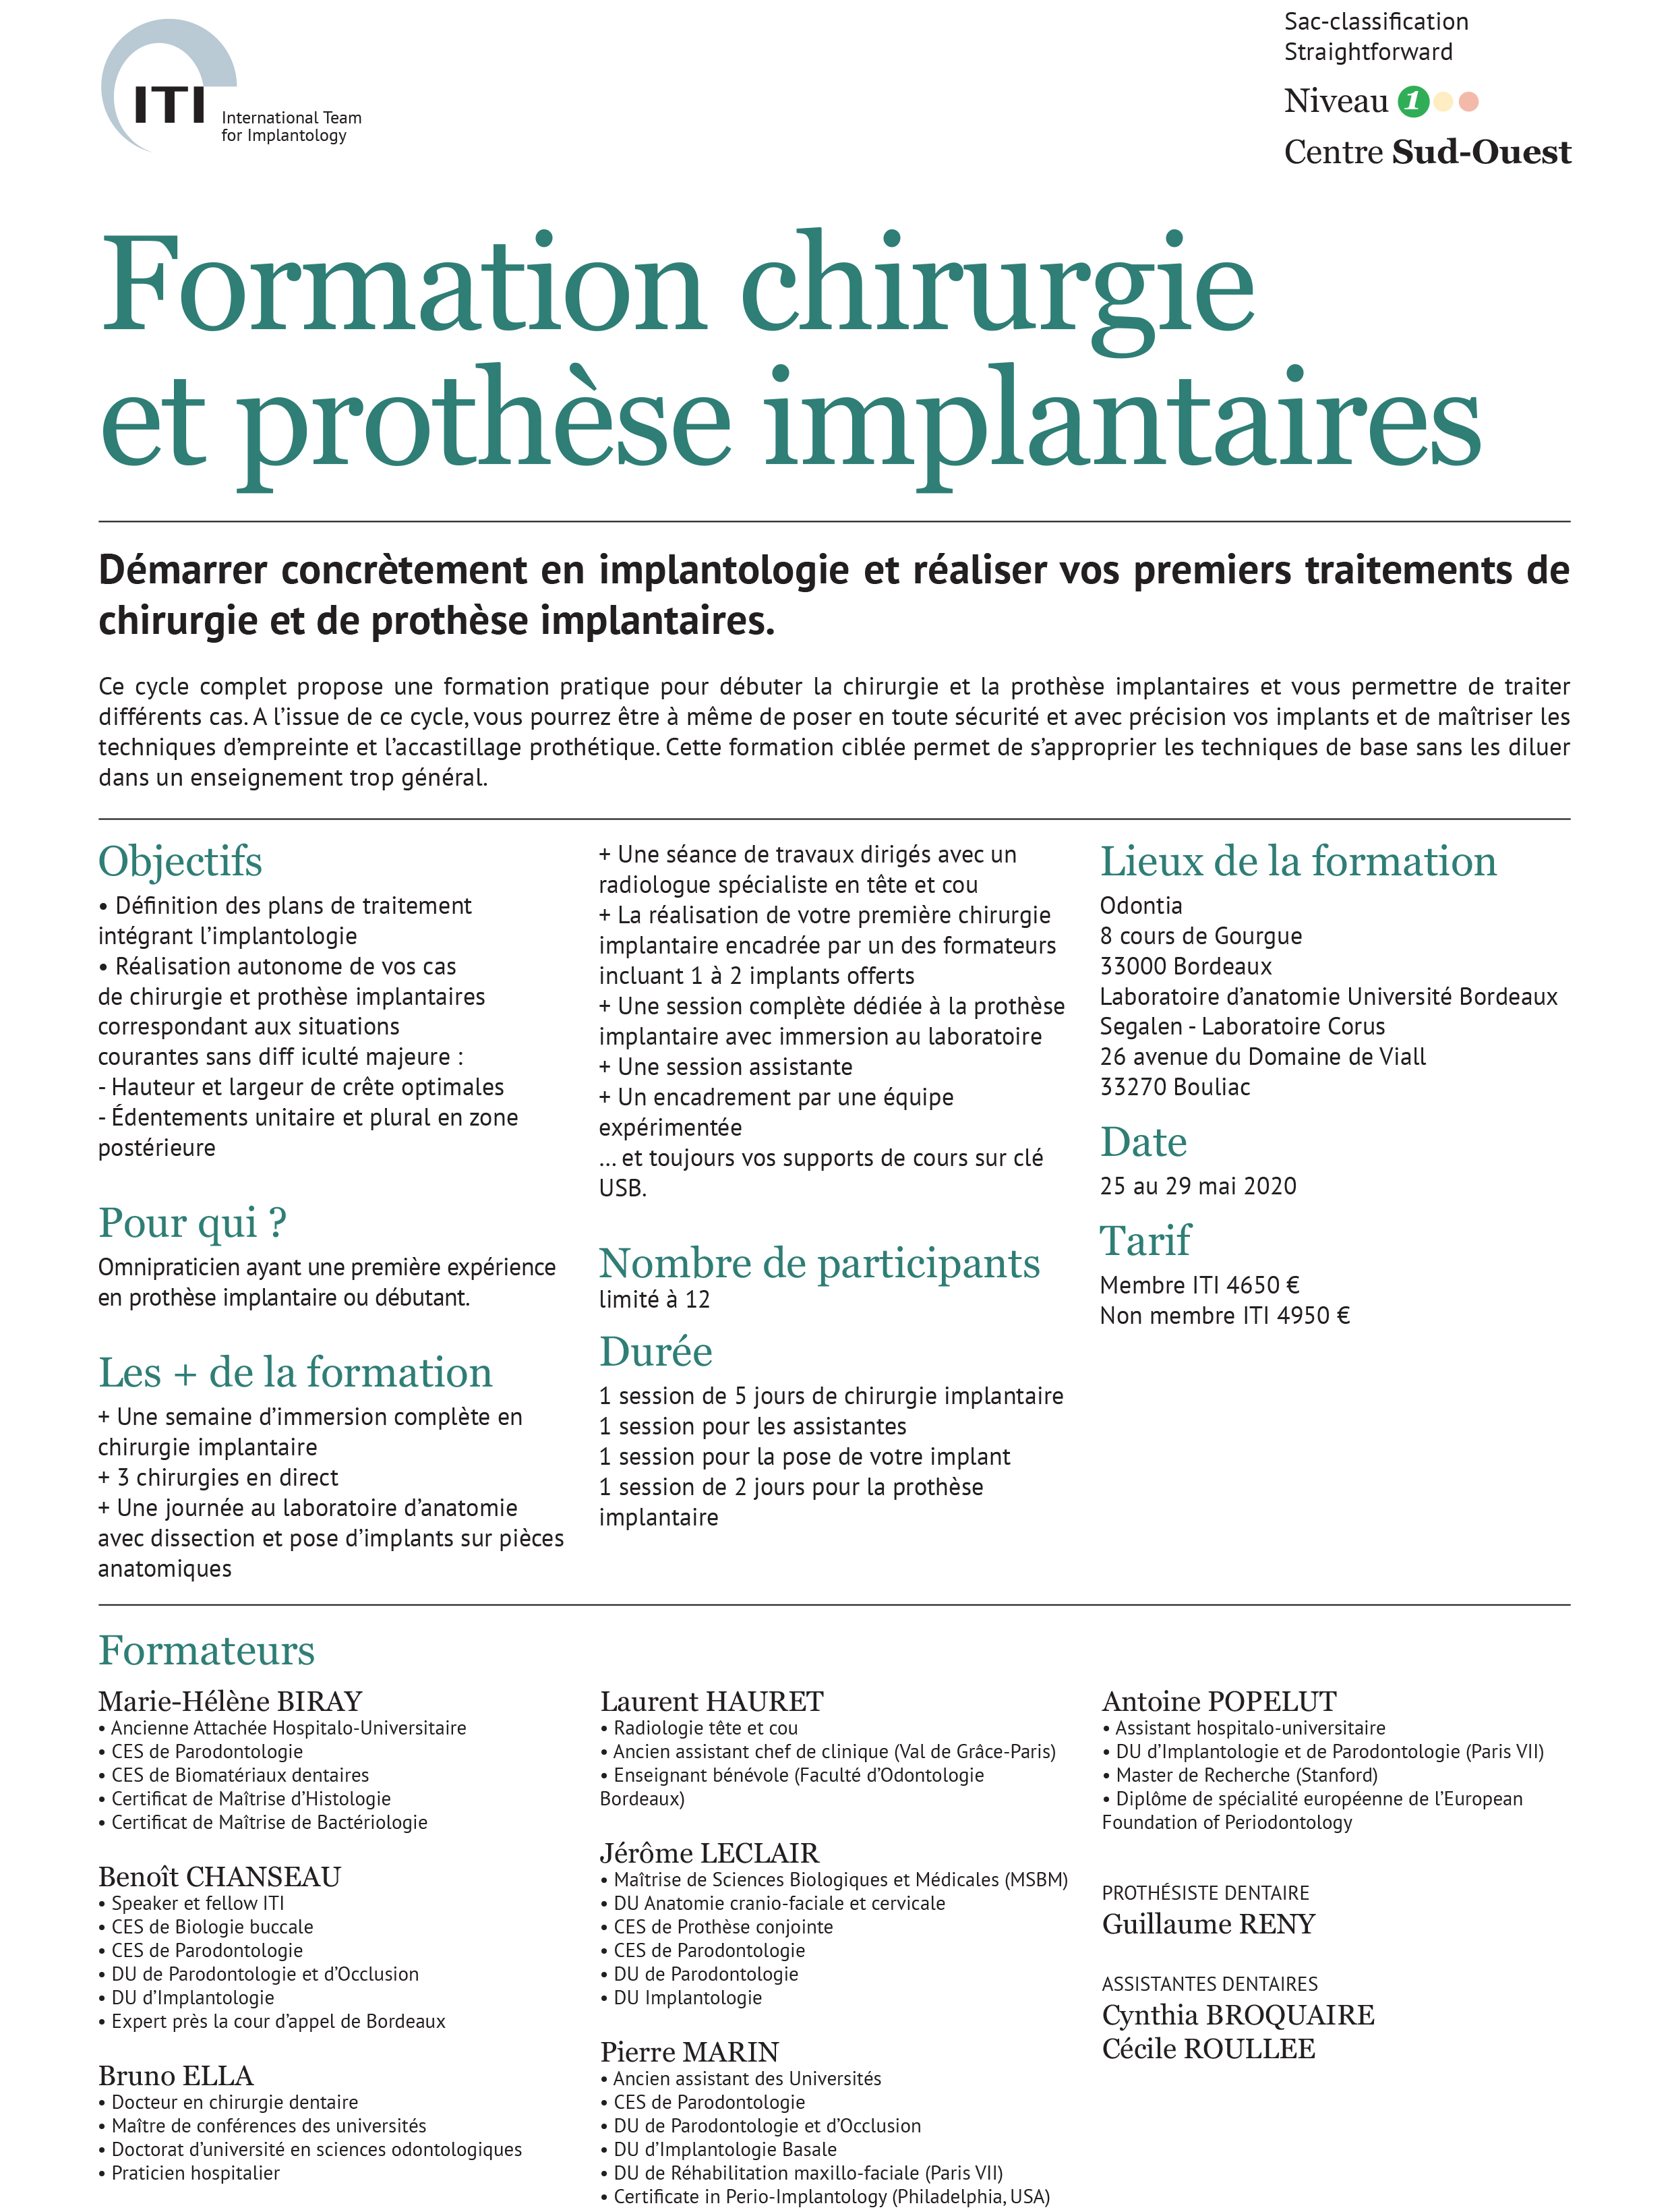 ITI Formation chirurgie et prothese implantaires